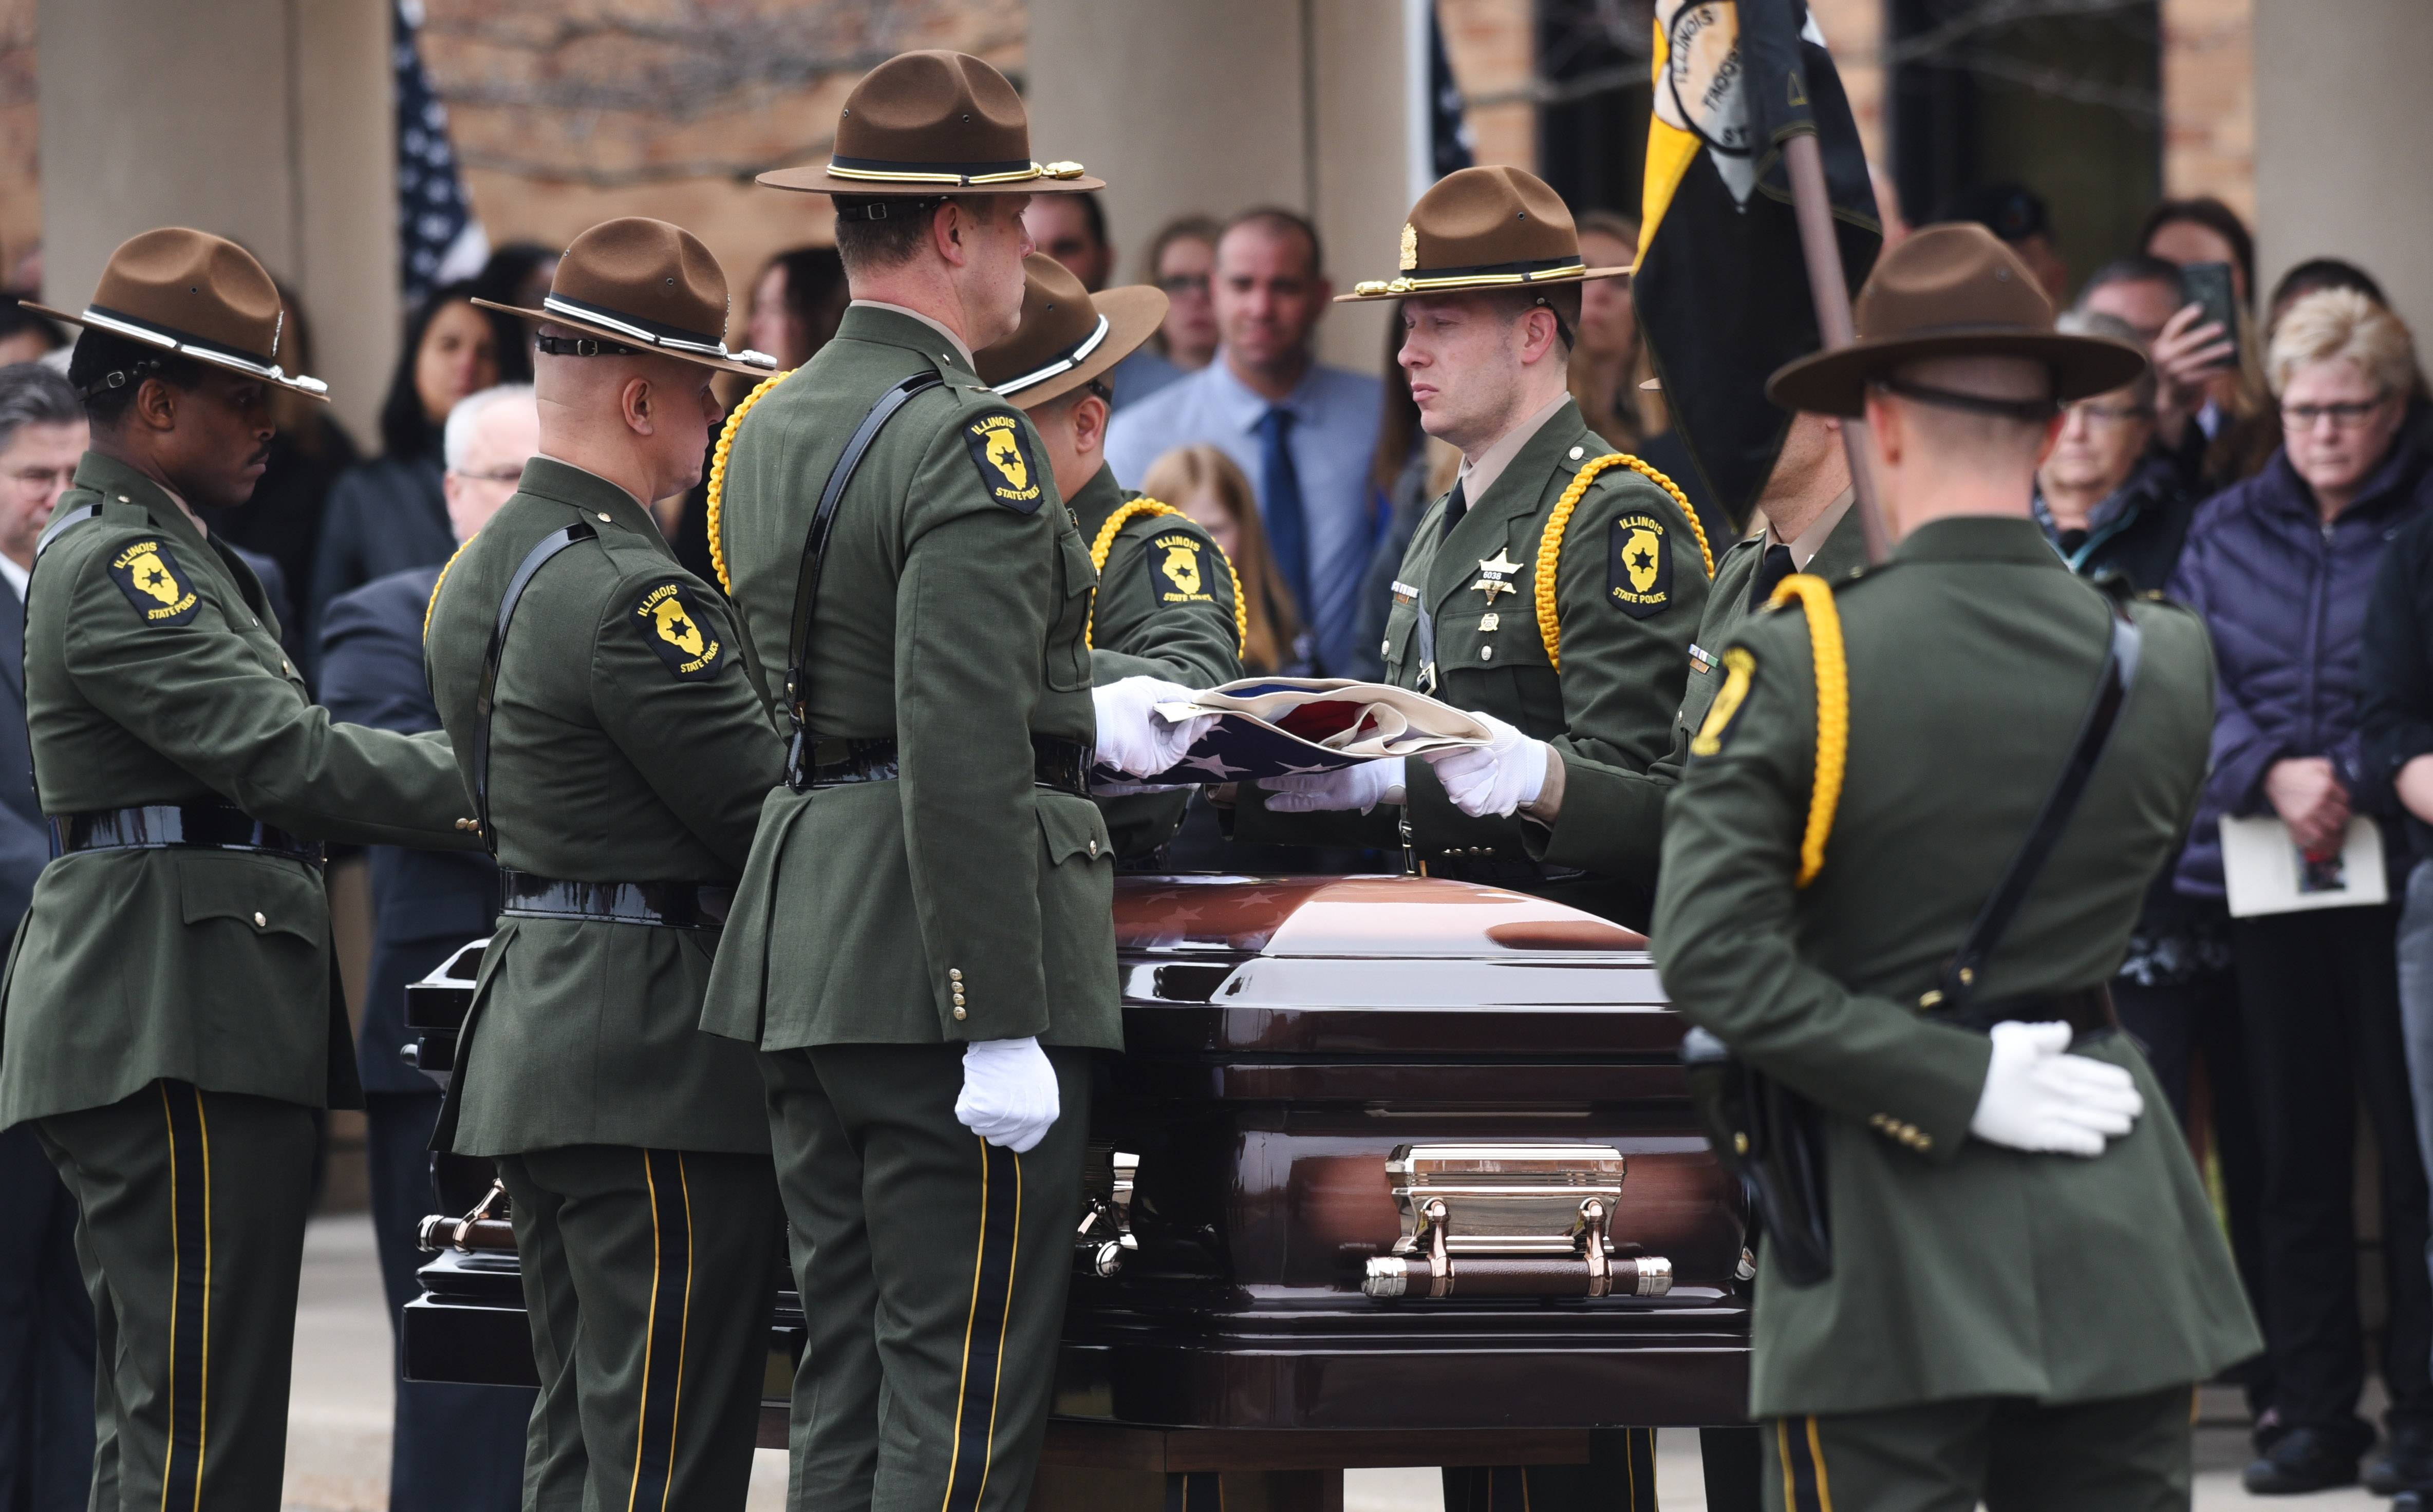 'Among the better angels': State trooper Gerald Ellis remembered for his humor, dedication